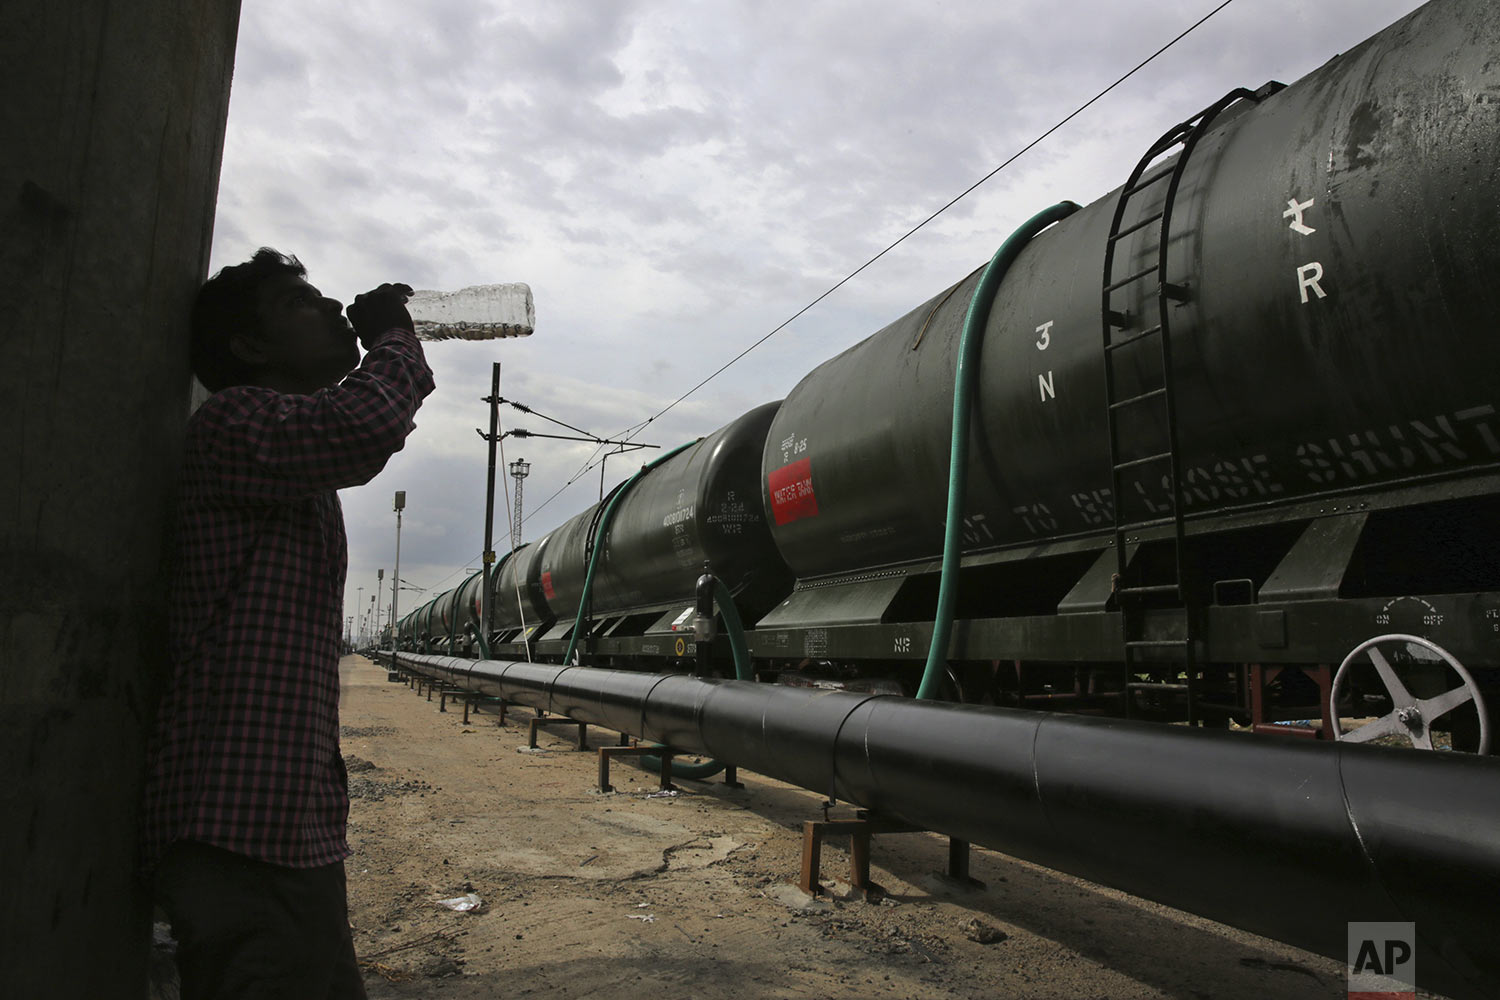 A worker takes a break to drink water while hundreds of hose-pipes are used to fill wagons of a train with drinking water piped through the Mettur dam on the Cauvery River at Jolarpet railway station, 216 kilometers (135 miles) from Chennai in Southern Indian state of Tamil Nadu, Wednesday, July 17, 2019. (AP Photo/Manish Swarup)